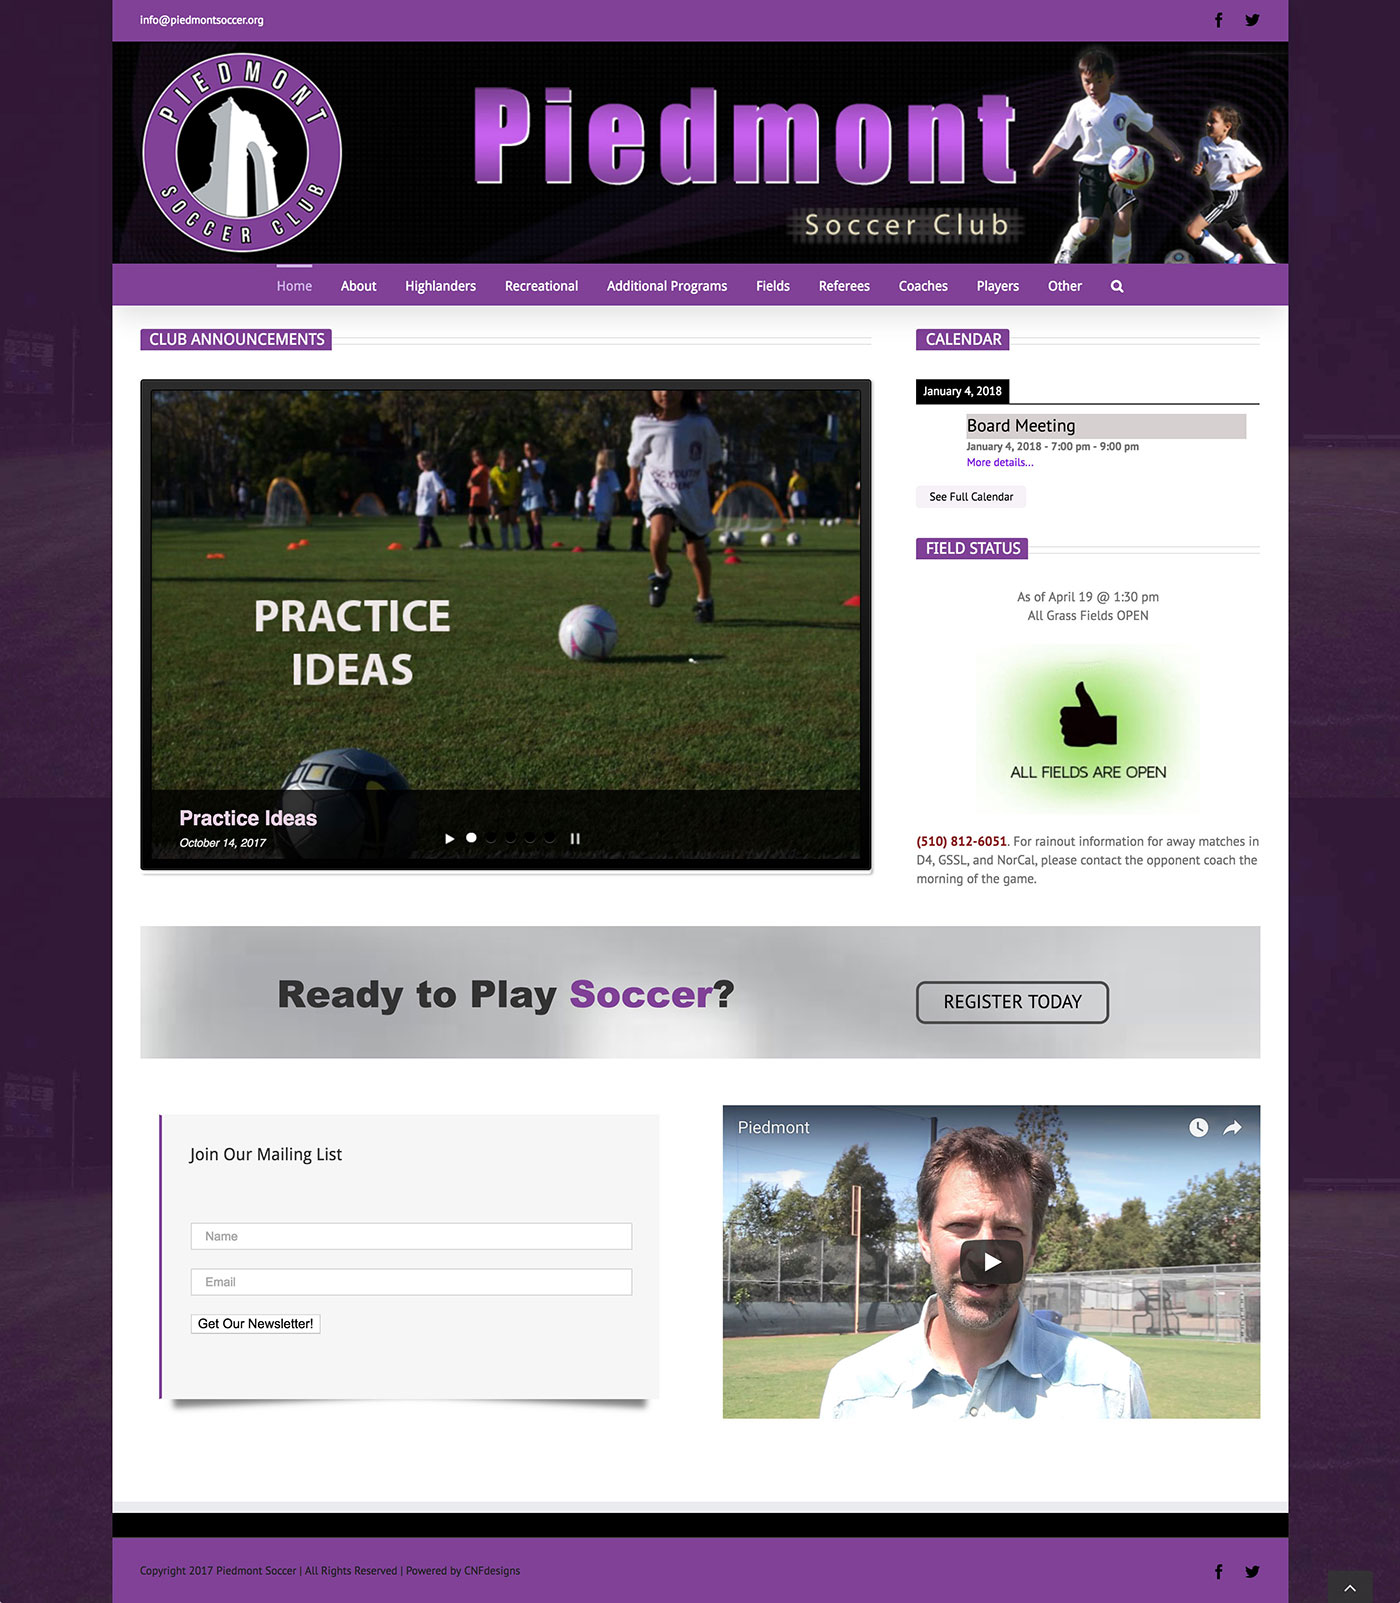 piedmont-soccer-club-website-old